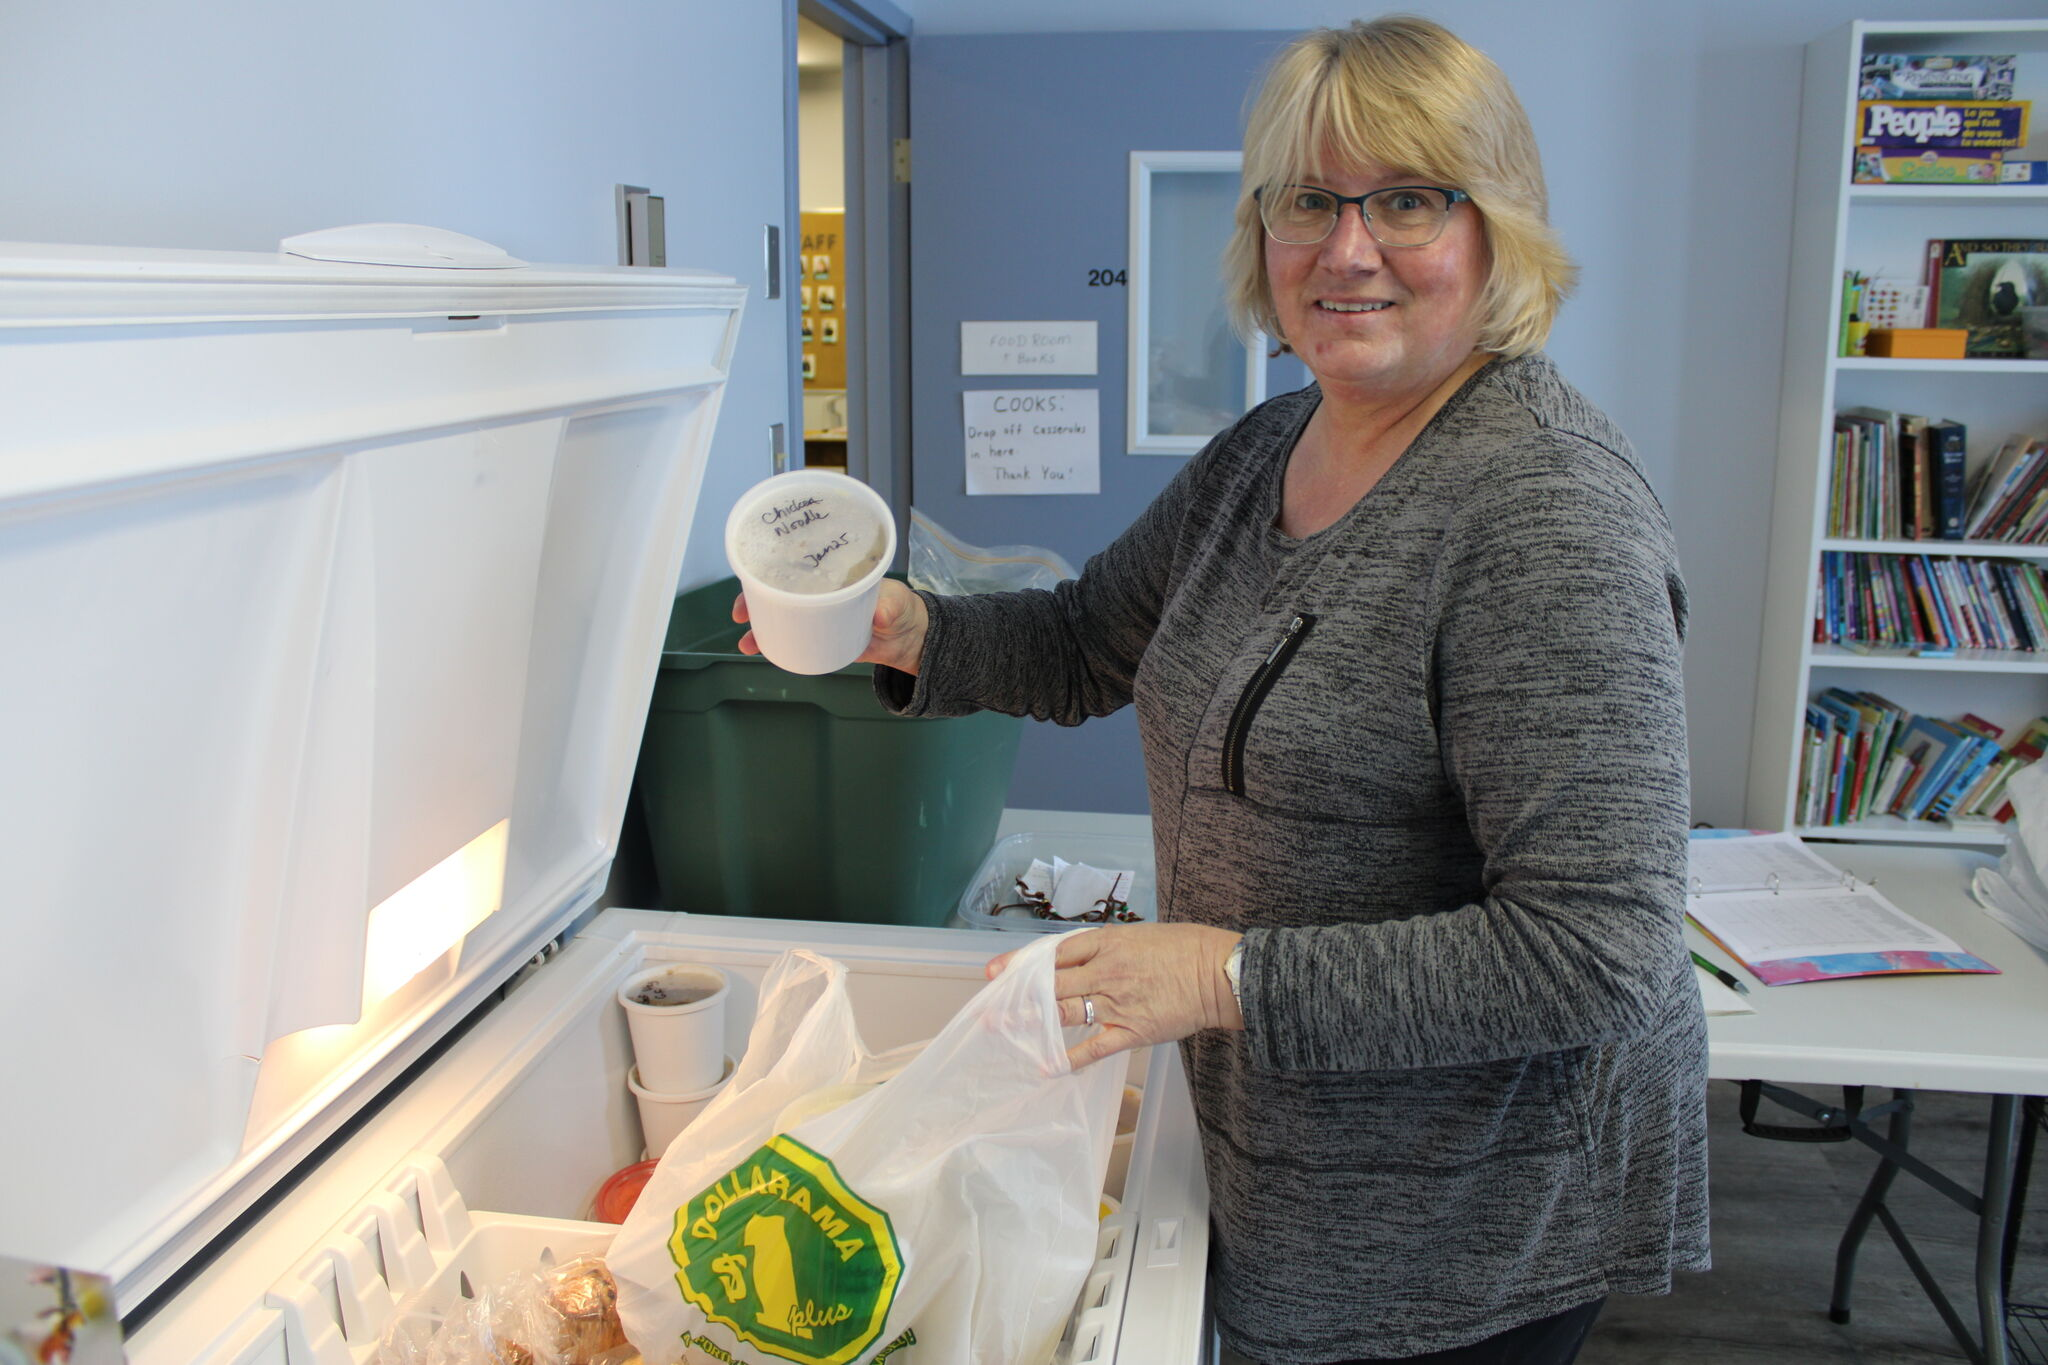 Tammy Bekkering fills a hamper at Steinbach Community Outreach. While she is maskless for the photo, she always wears a mask for safety when she's making them for clients.